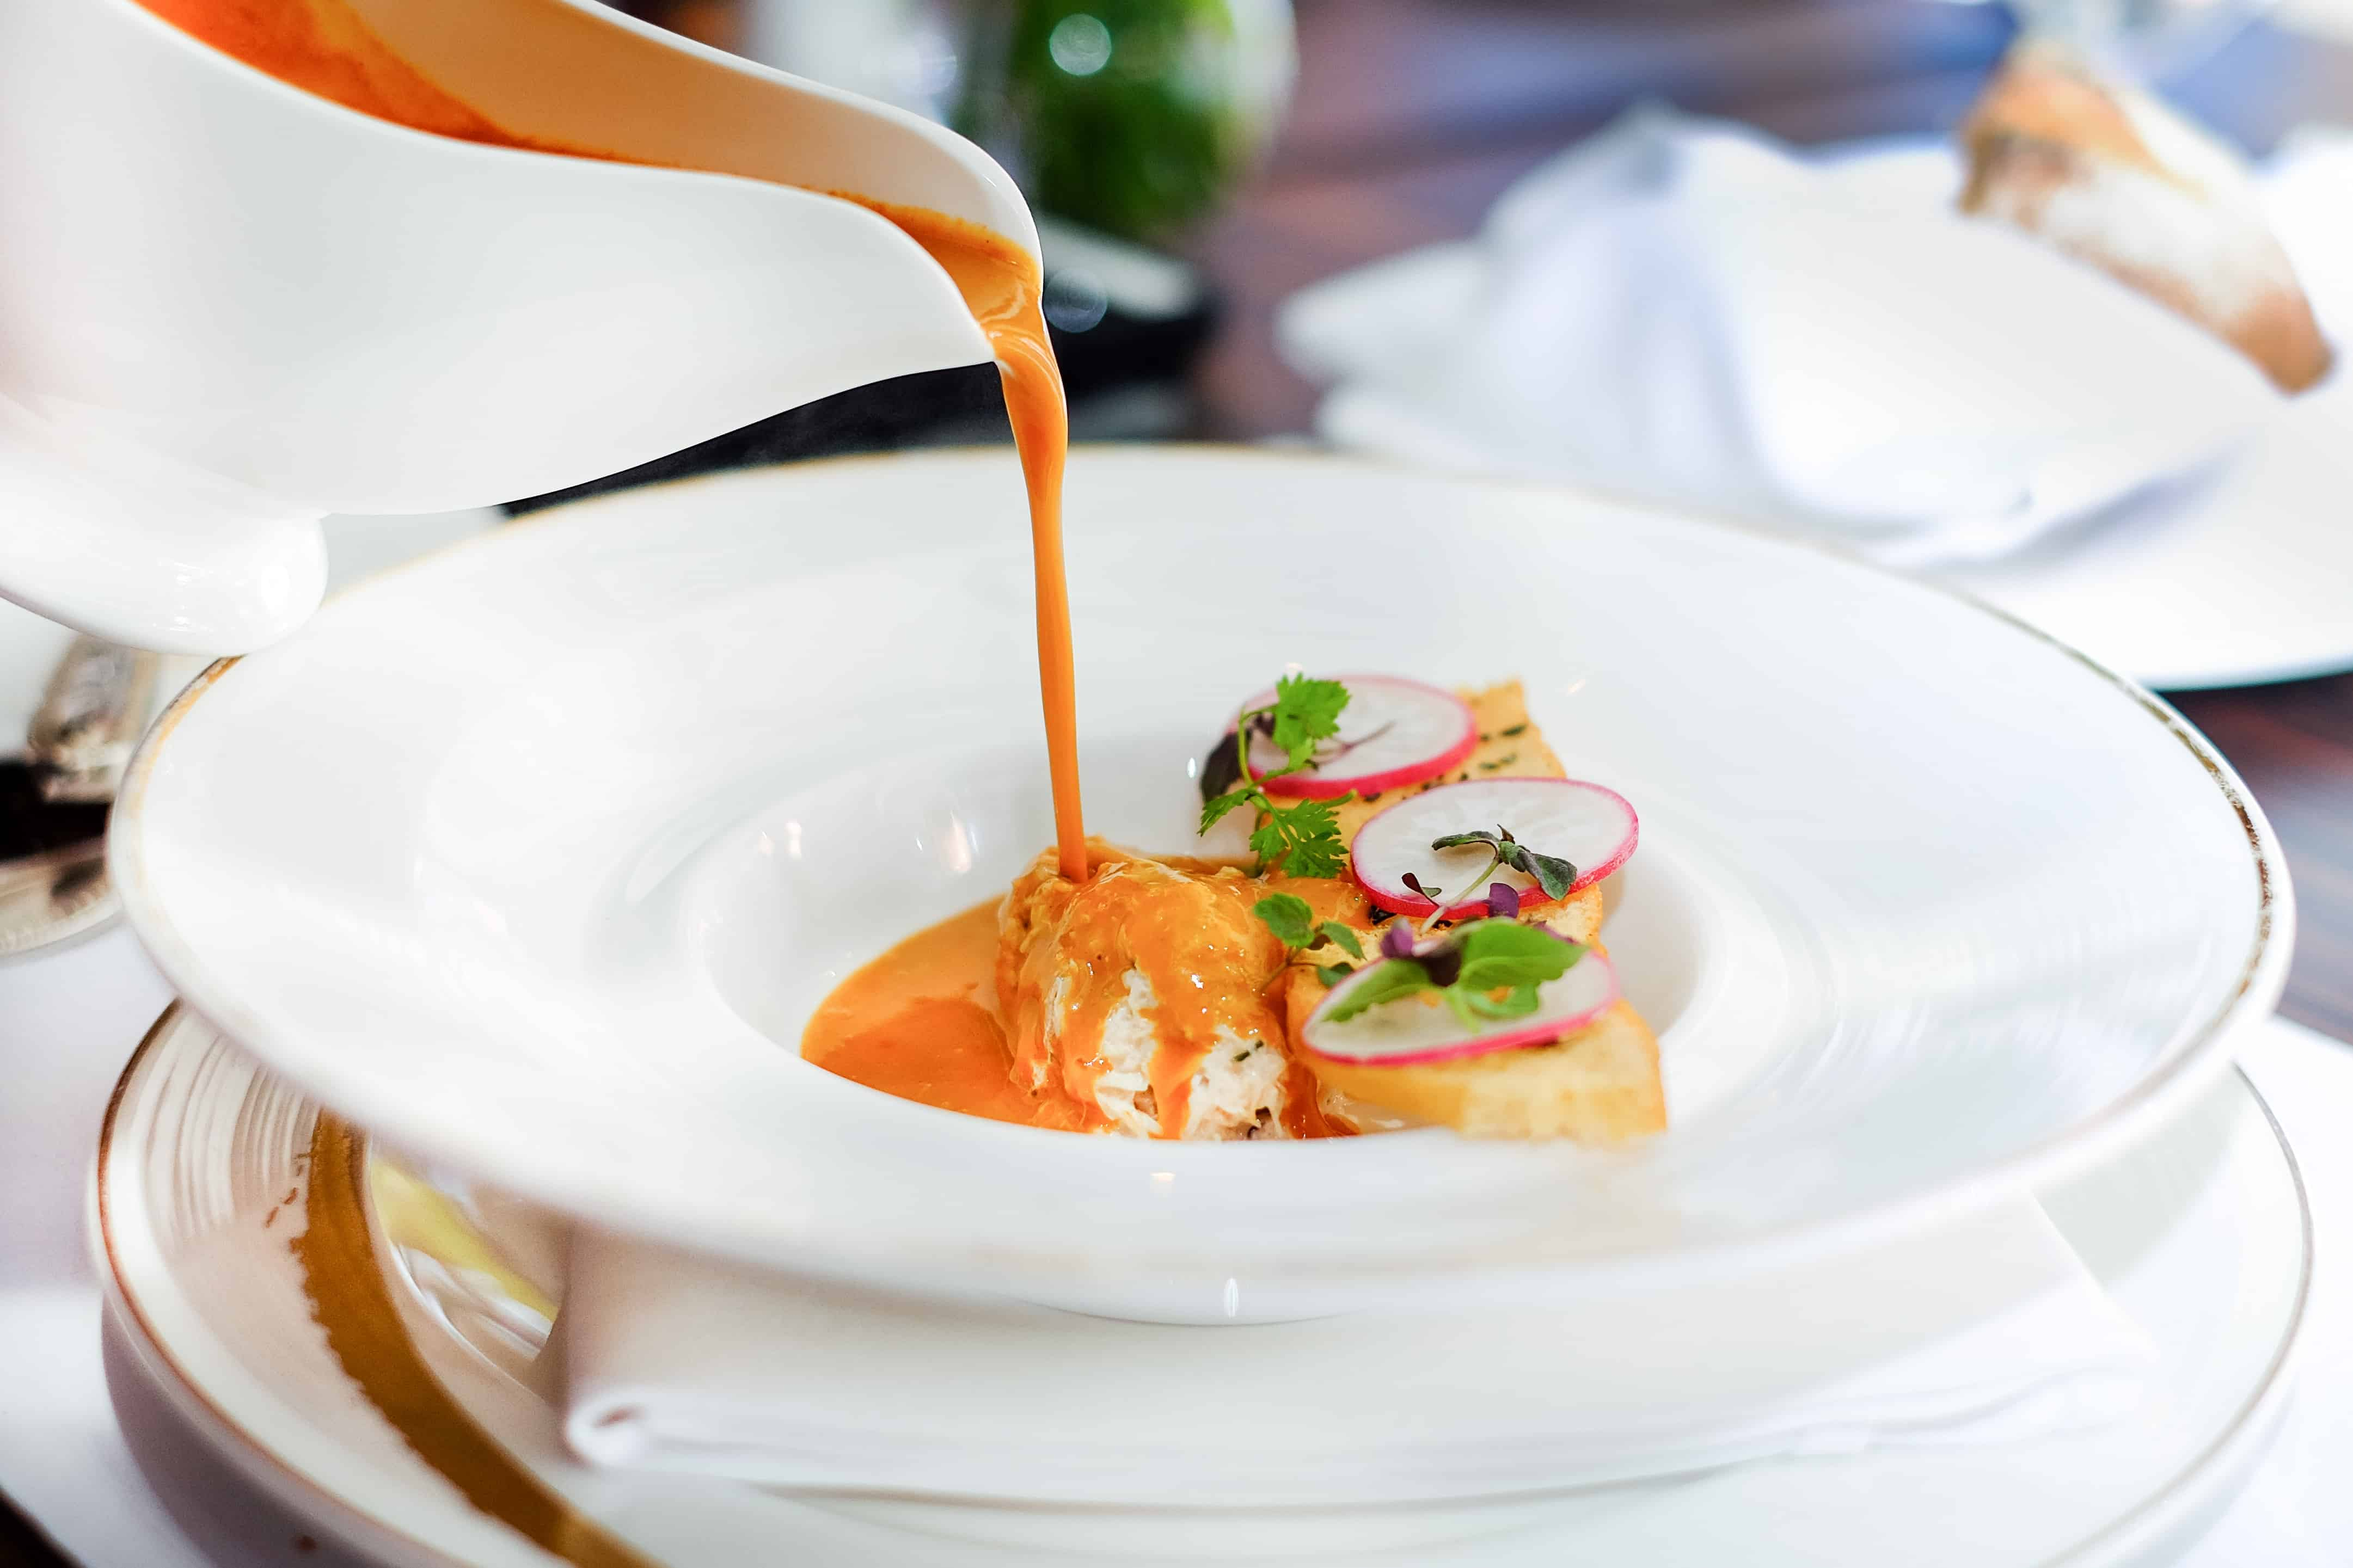 Brasserie les saveurs chef thomas cruise presents new for Cuisine tom cruise